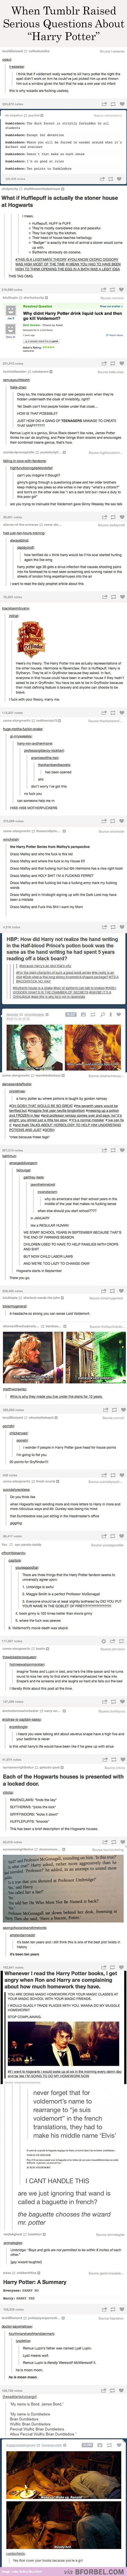 28 Seriously Amazing Harry Potter Questions Raised By Tumblr 'the baguette chooses the wizard Mr. Potter.':